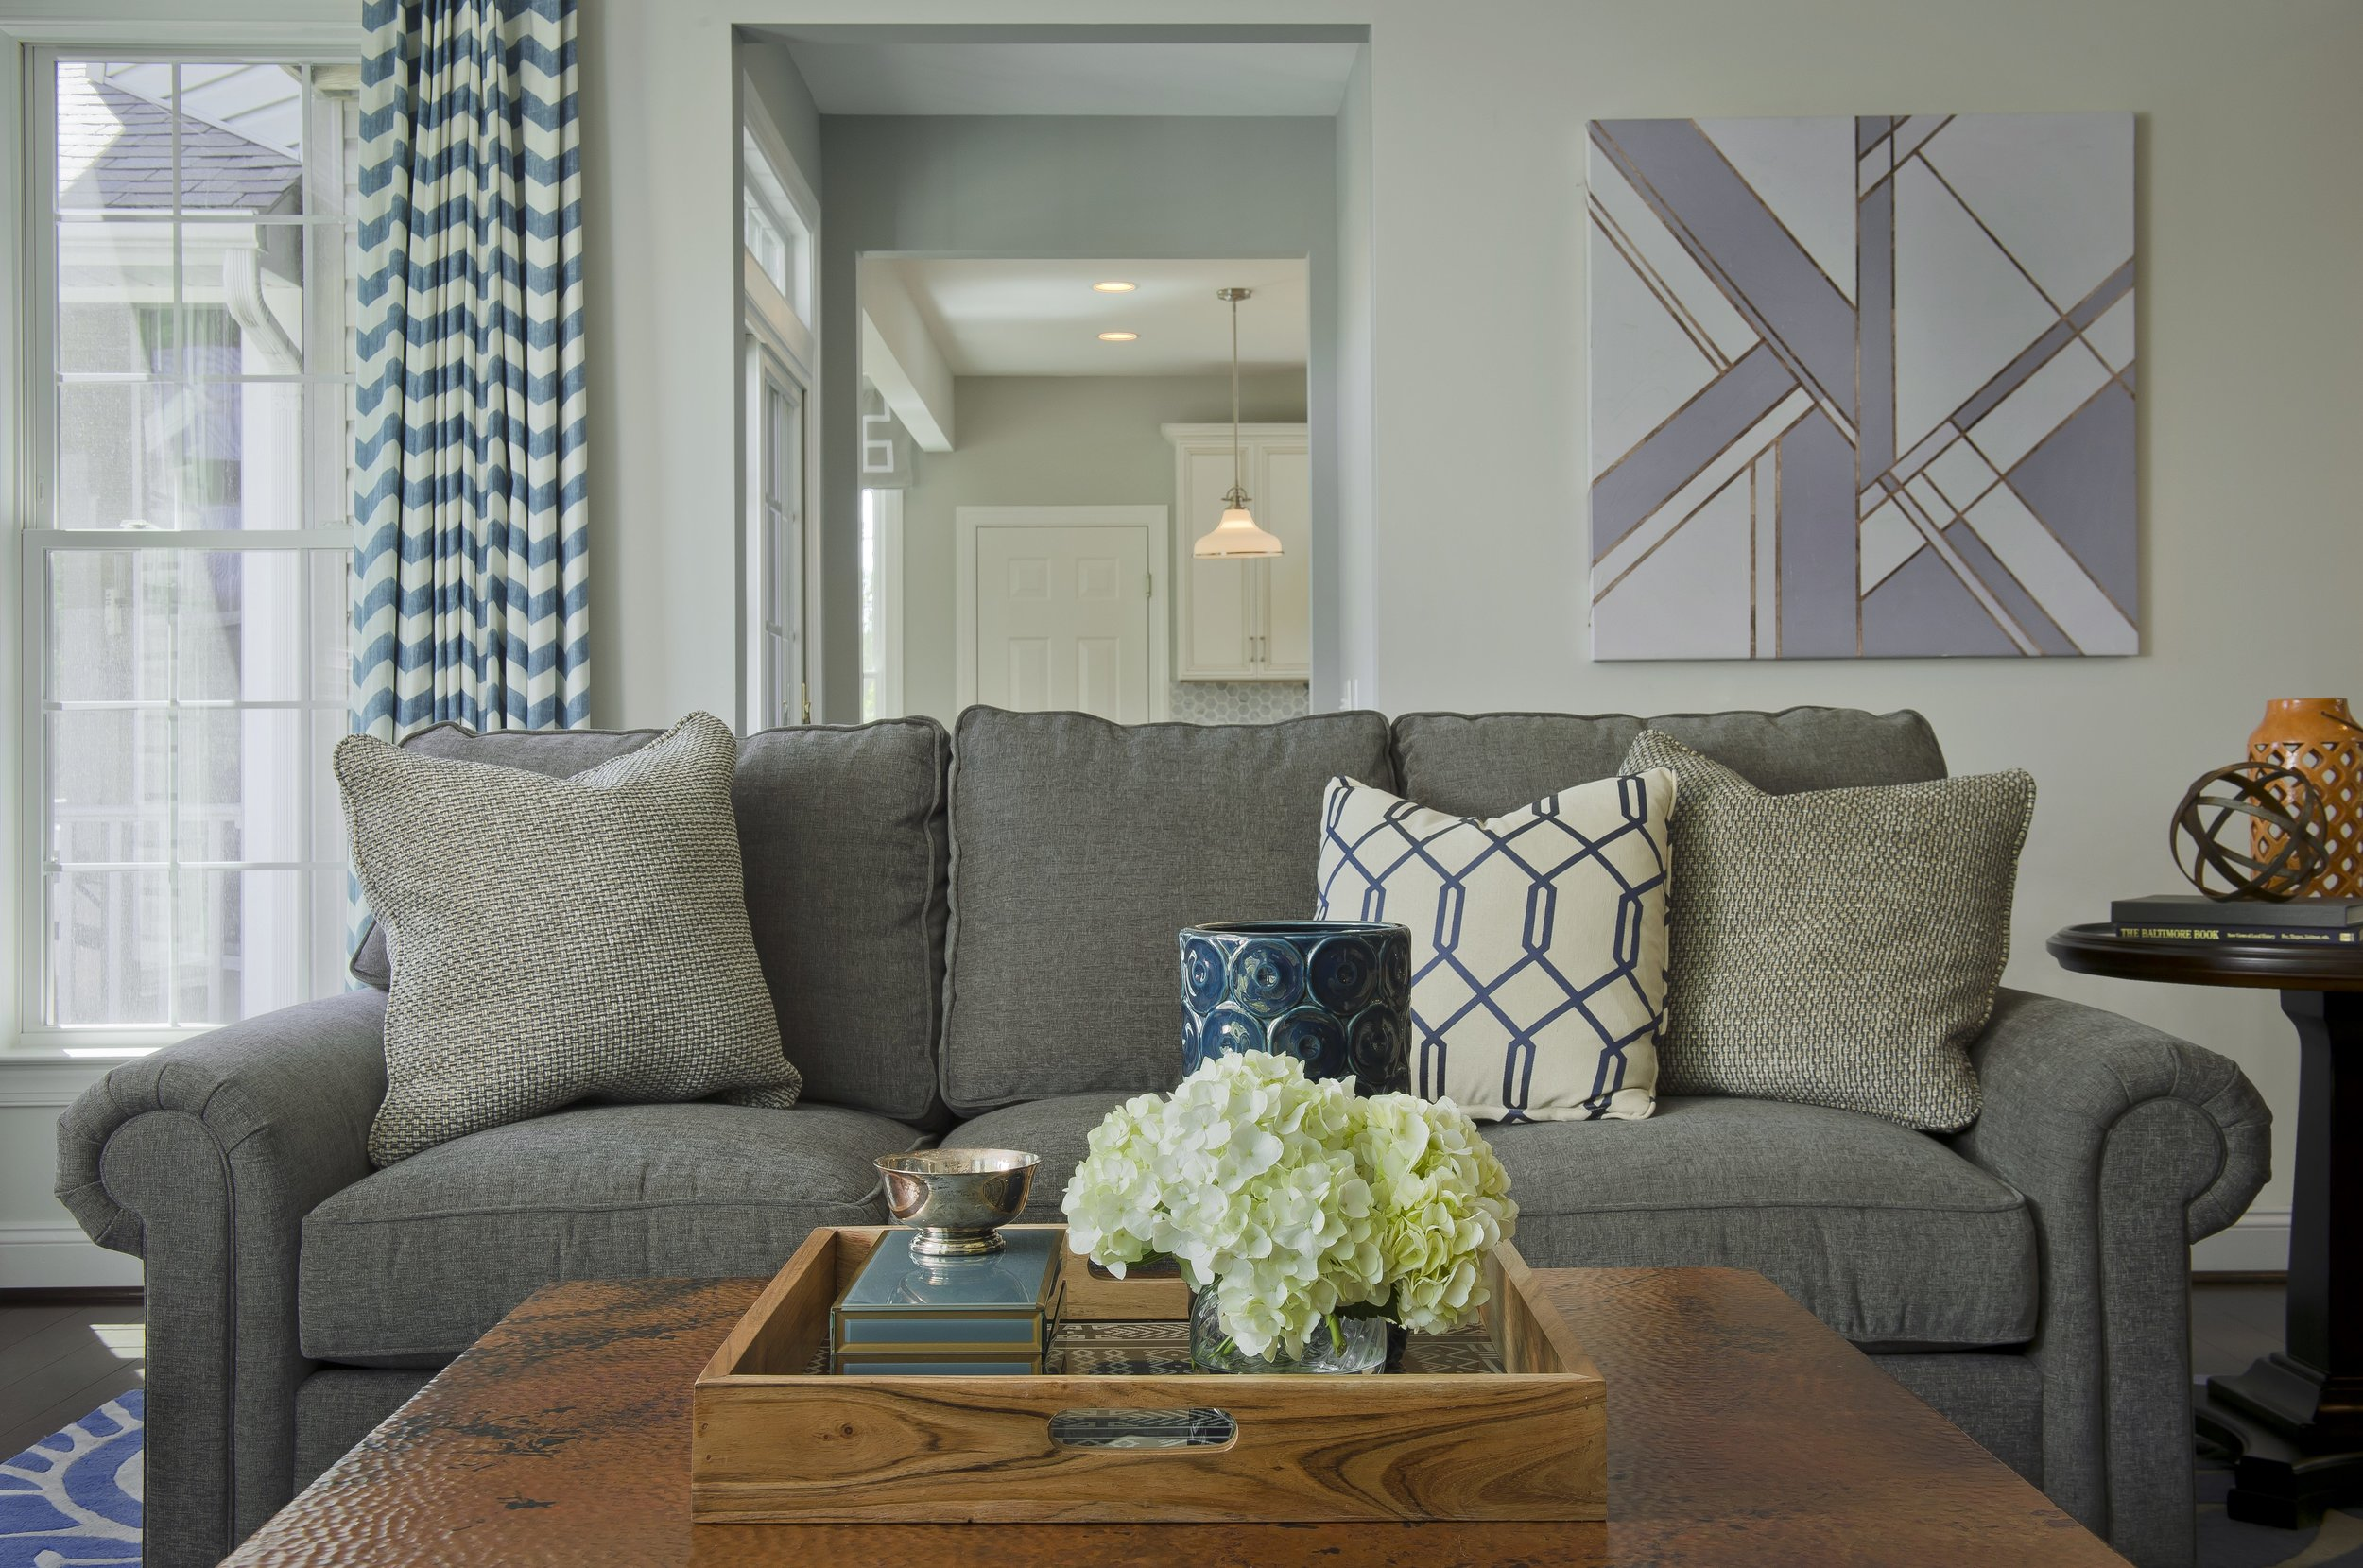 {A tray on a coffee table is an easy place to switch up your decor after the New Year! Design by April Force Pardoe Interiors – Photo by Vince Lupo.}